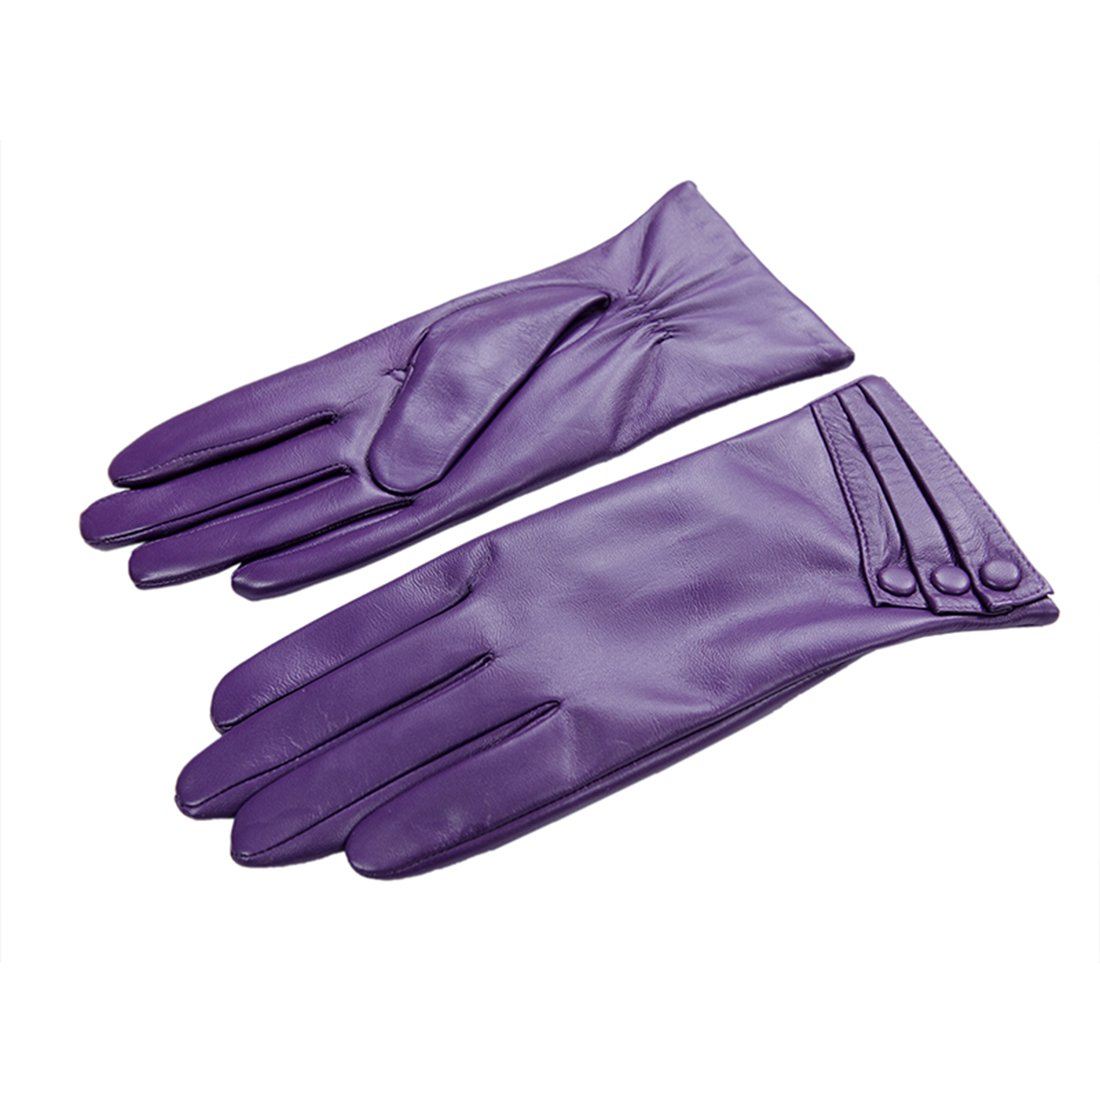 Nappaglo Nappa Leather Gloves Warm Lining Winter Button Decoration Imported Leather Lambskin Gloves for Women (XXL, Purple)